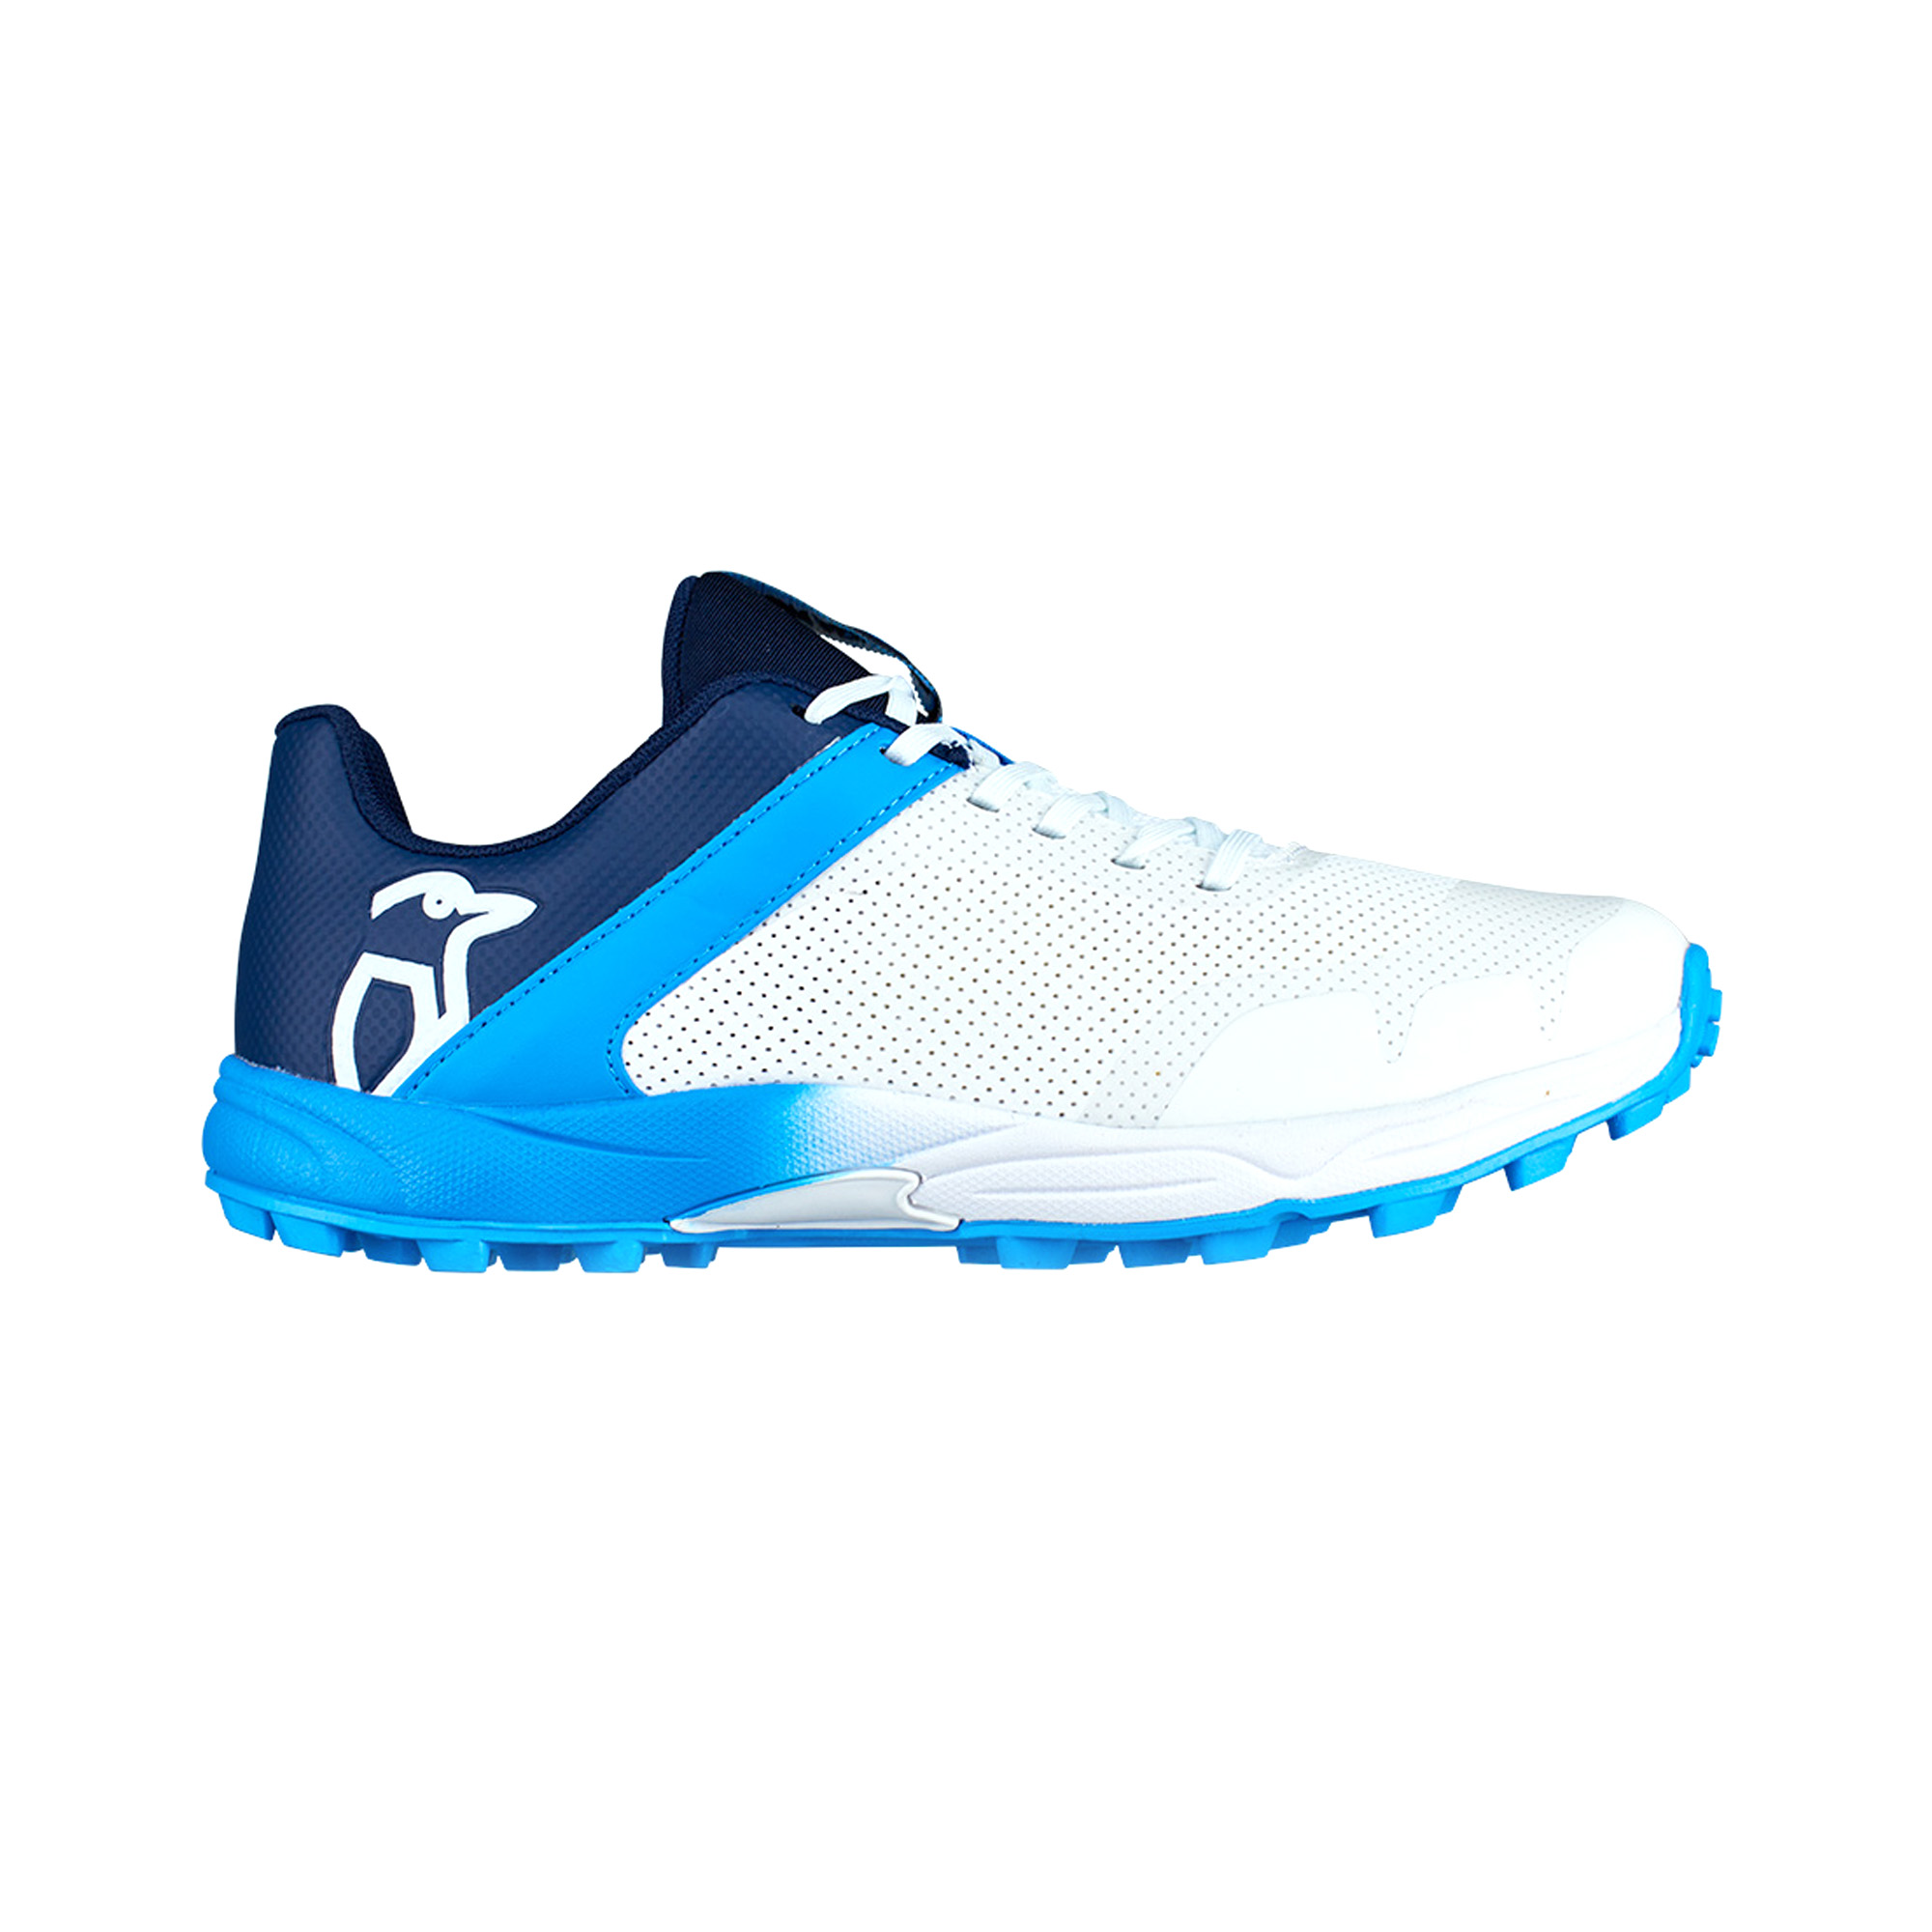 32db0f903735 Details about Kookaburra 2019 KC 2.0 Rubber Kids Junior Cricket Shoe Spike  White Blue